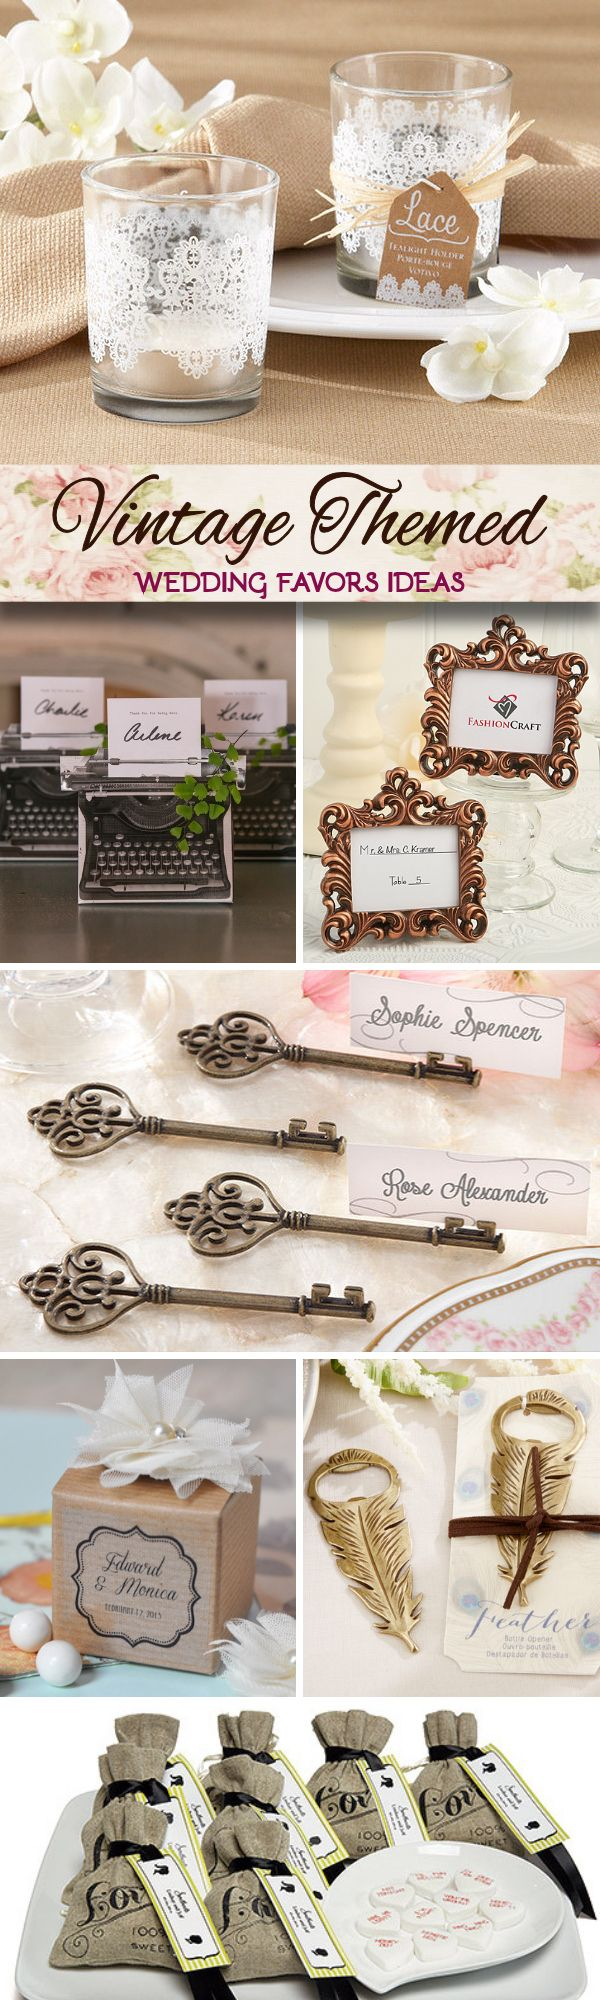 Vintage Themed Wedding Favor Ideas